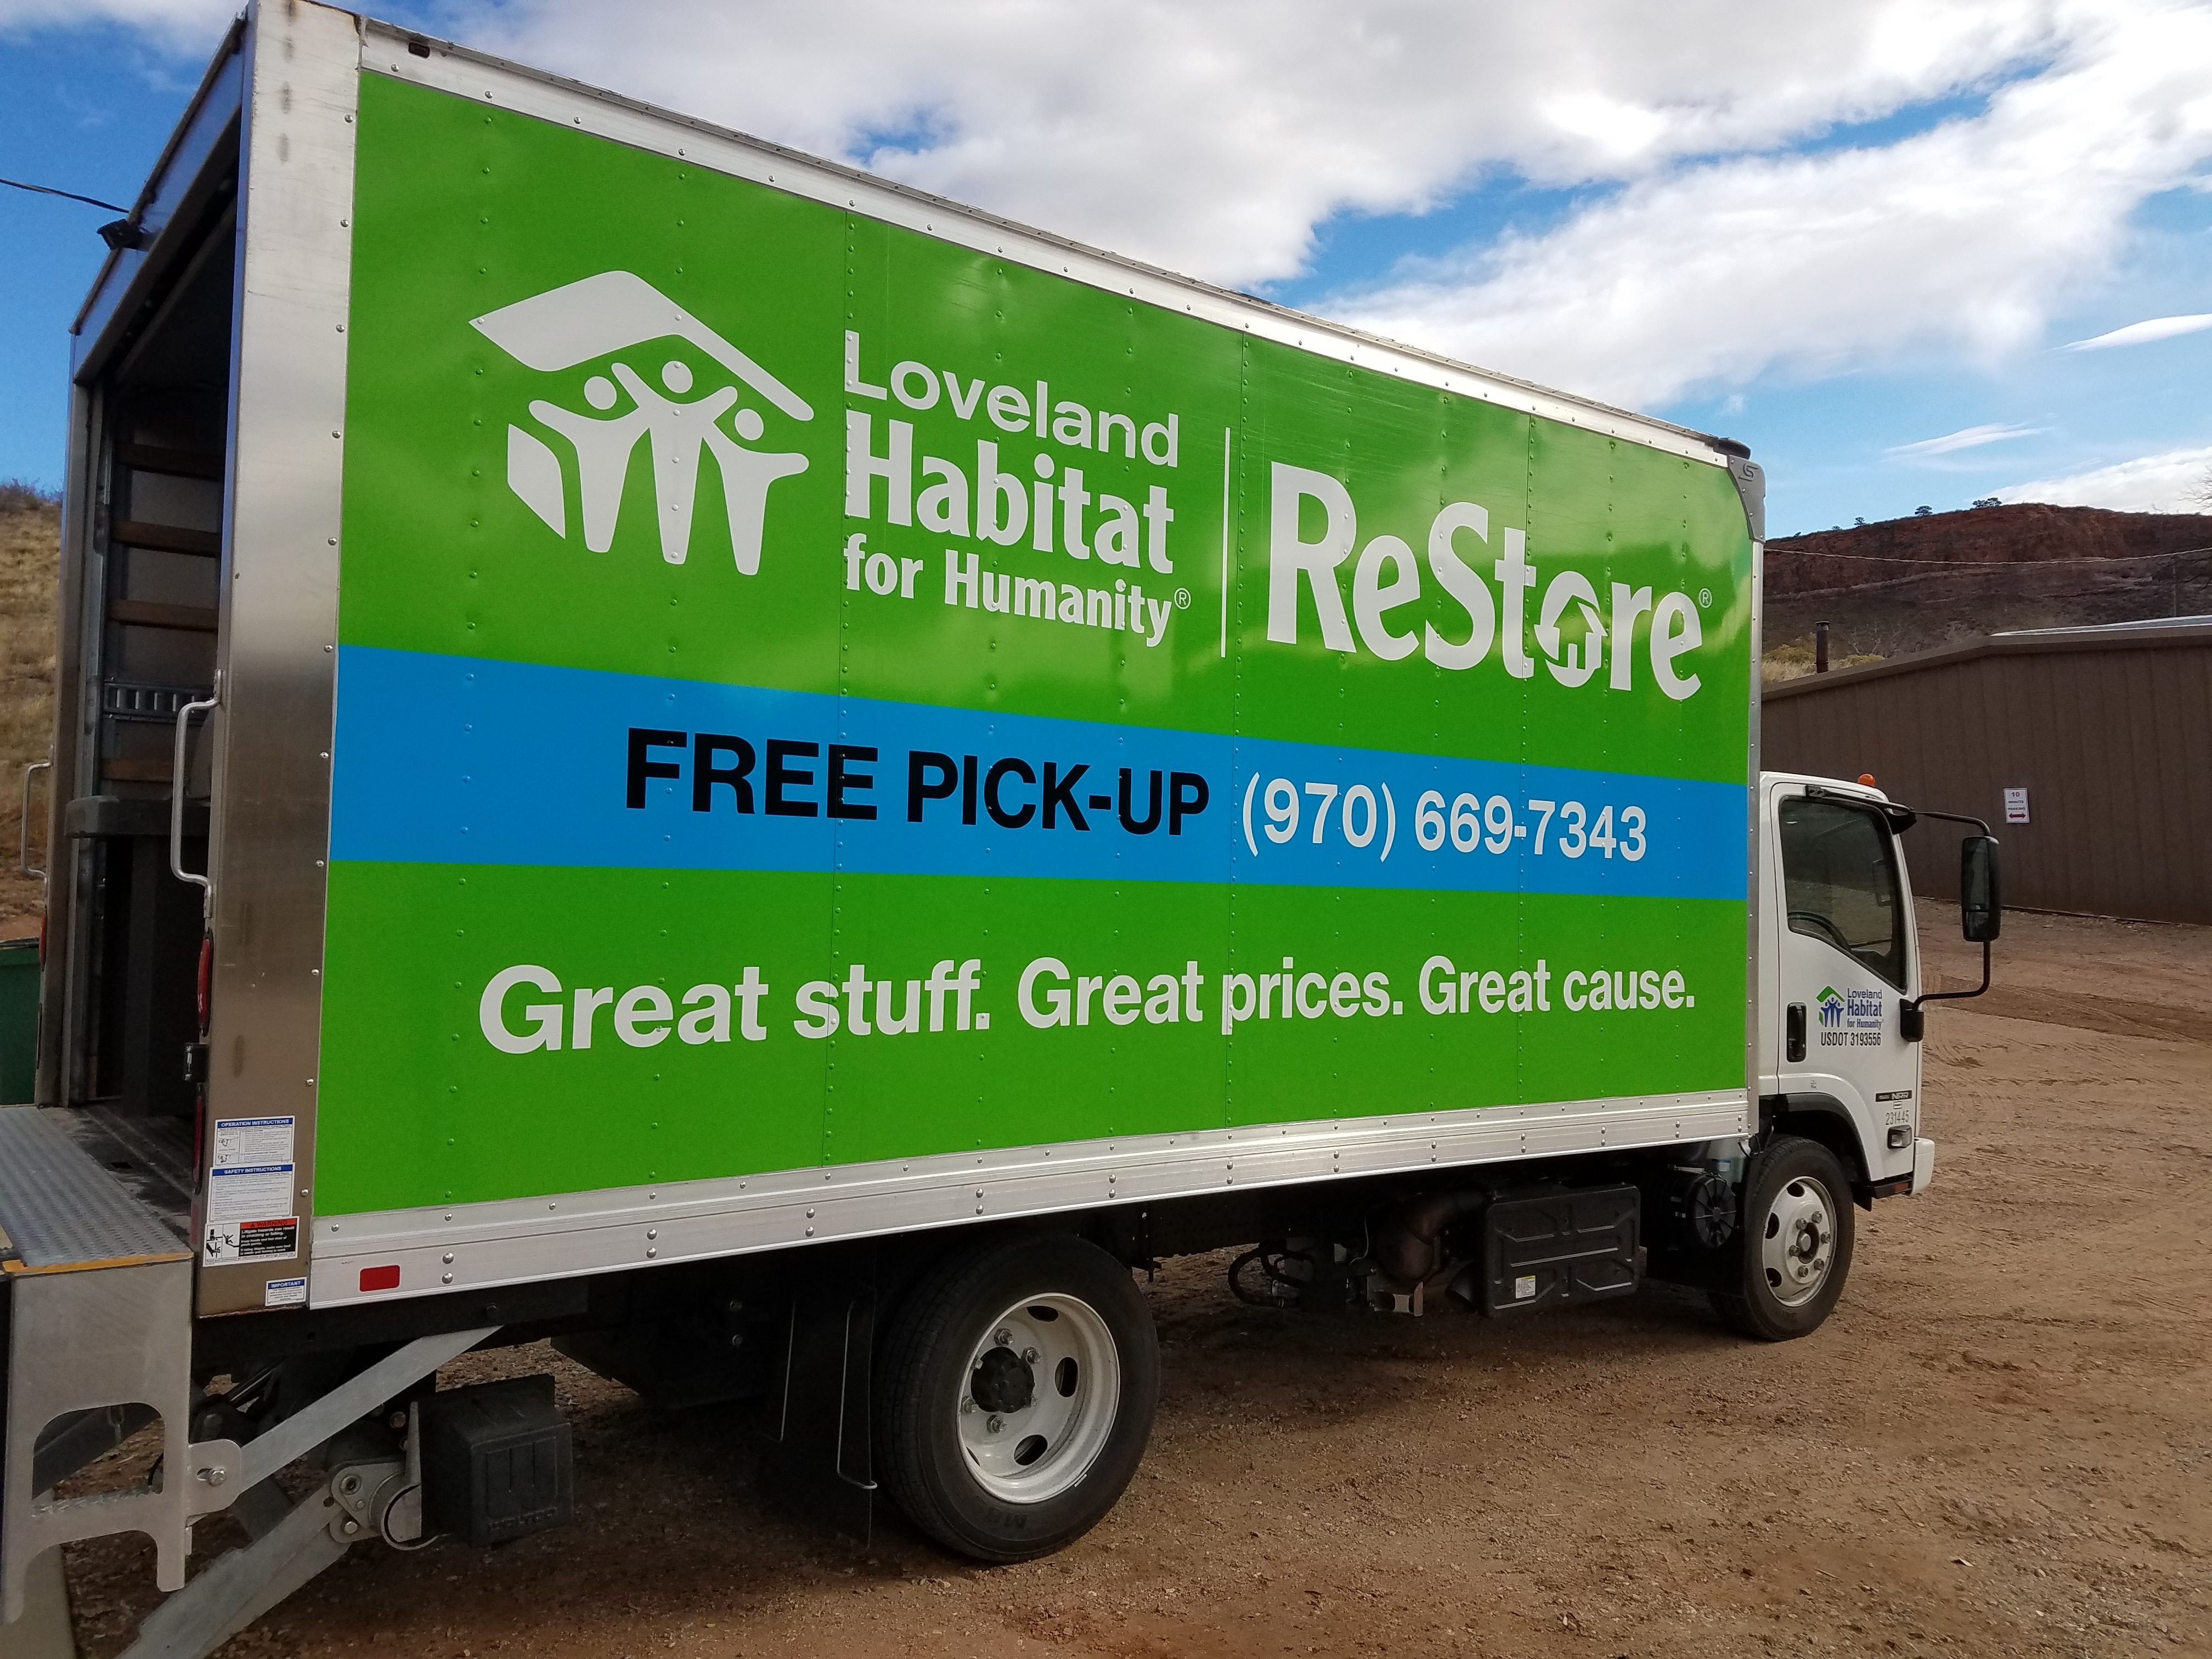 We Make Free Pick-ups of Furniture and Large Donations...Call 970-669-7343.